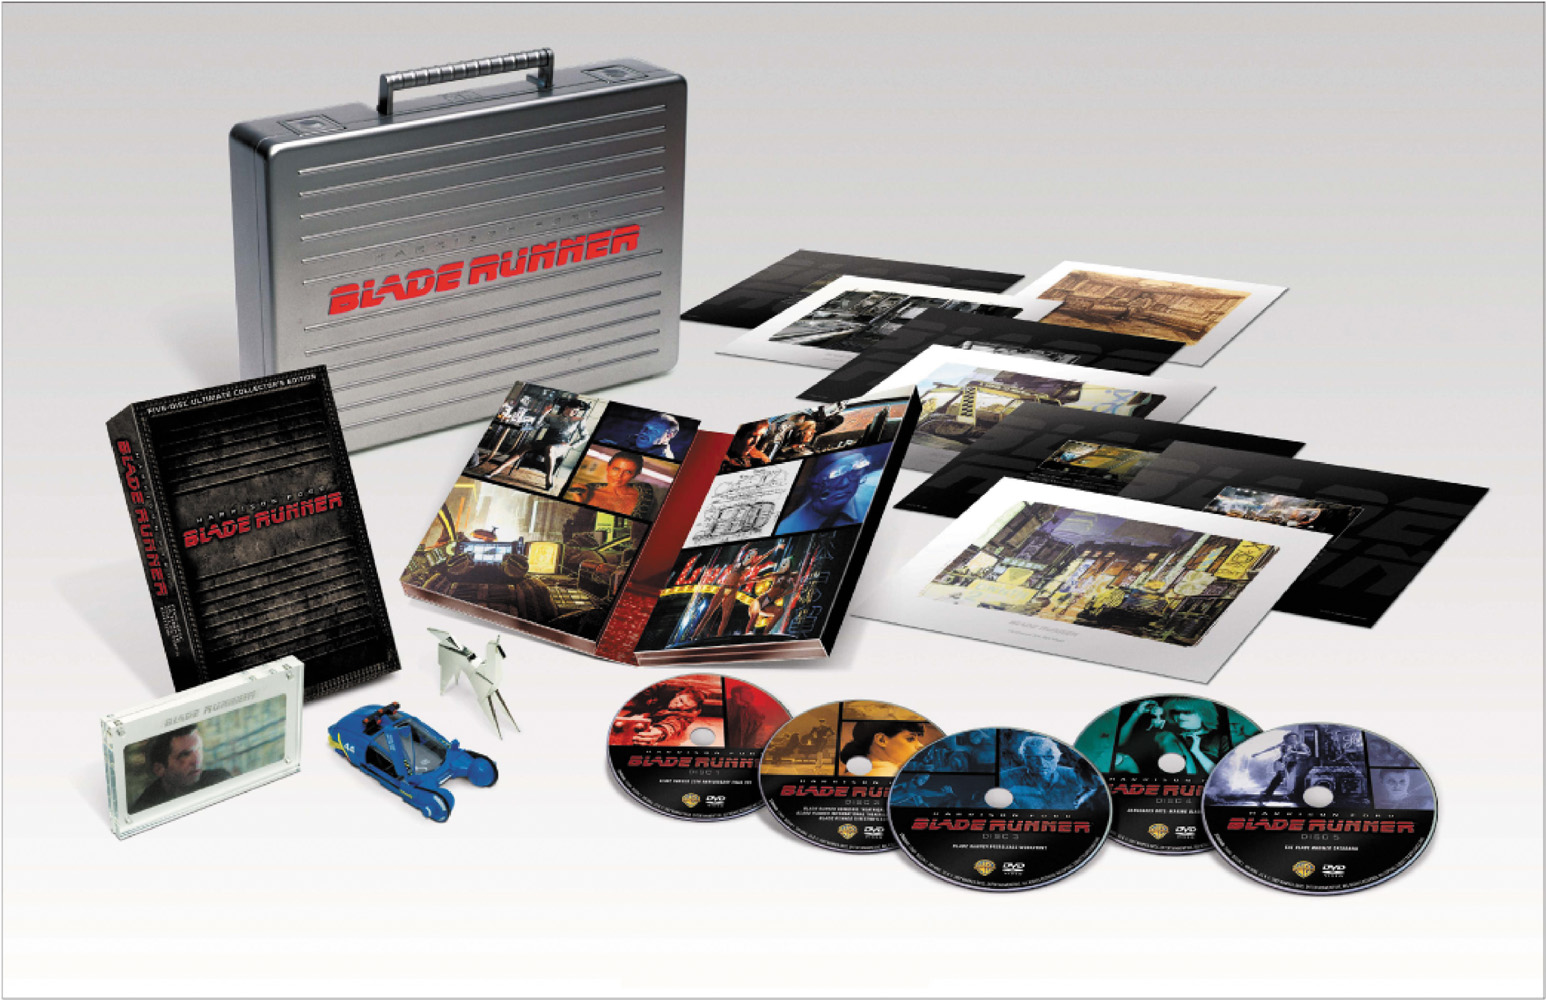 Planning Des Editions collector Blu-ray/DvD - Page 2 A0022655_712751